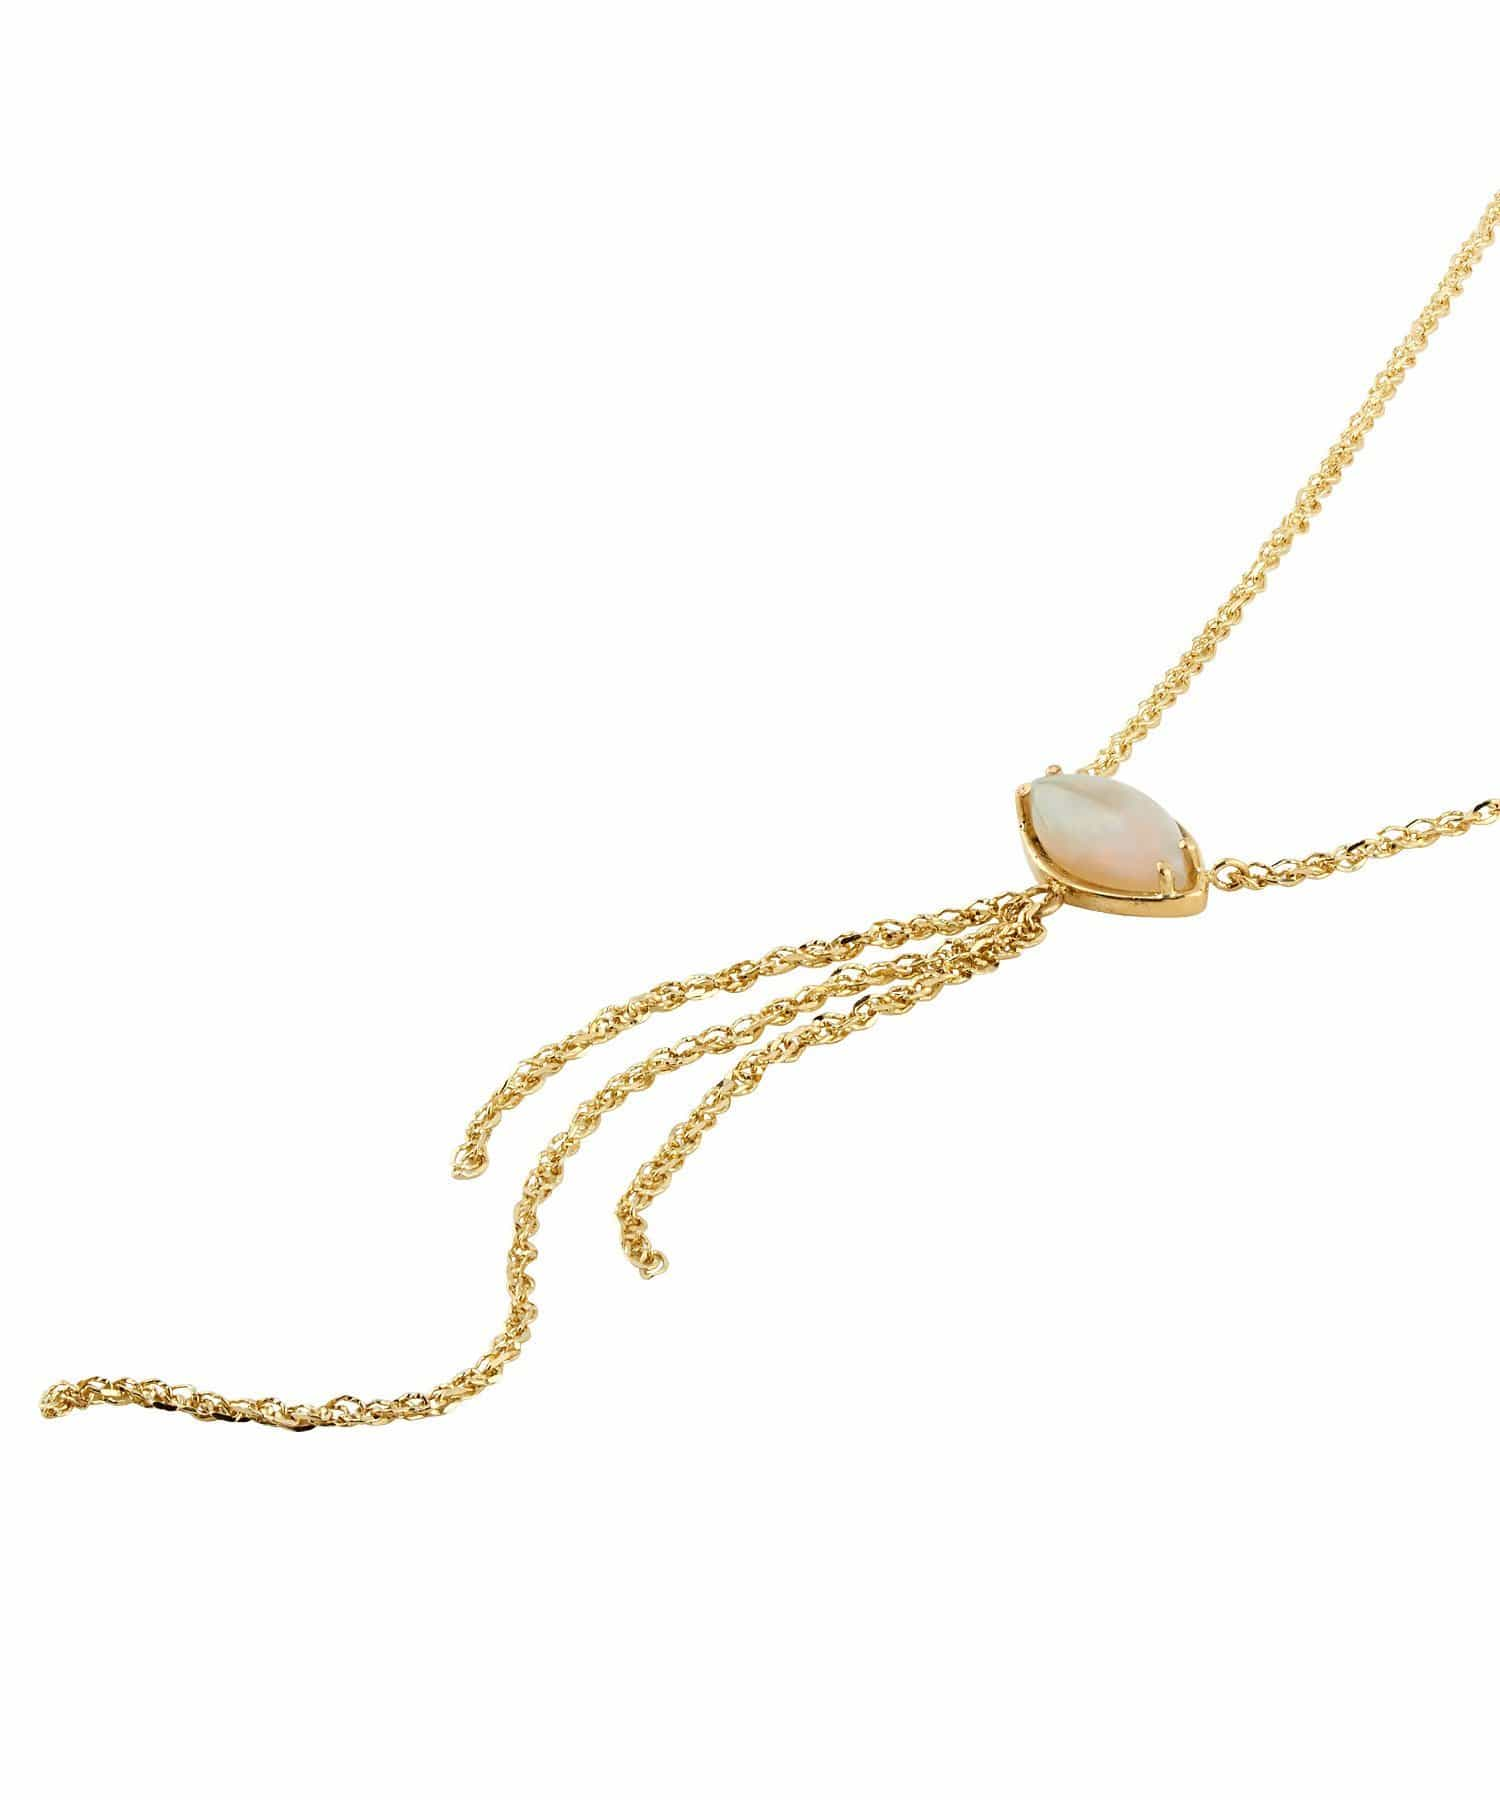 Opal Yellow Gold Tassel Chain Necklace - Curated Los Angeles